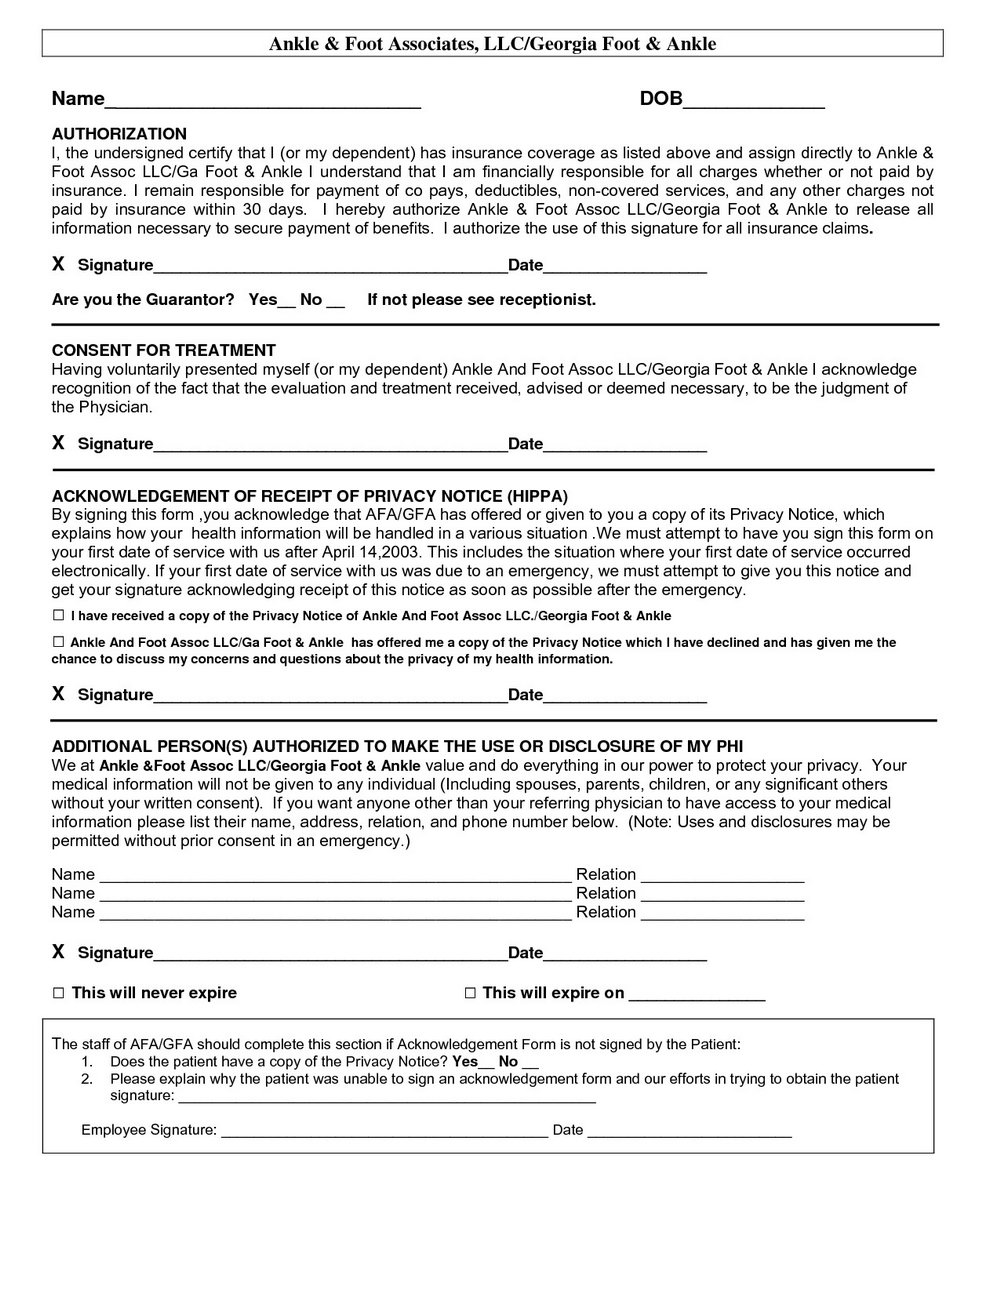 Hipaa Form Sample